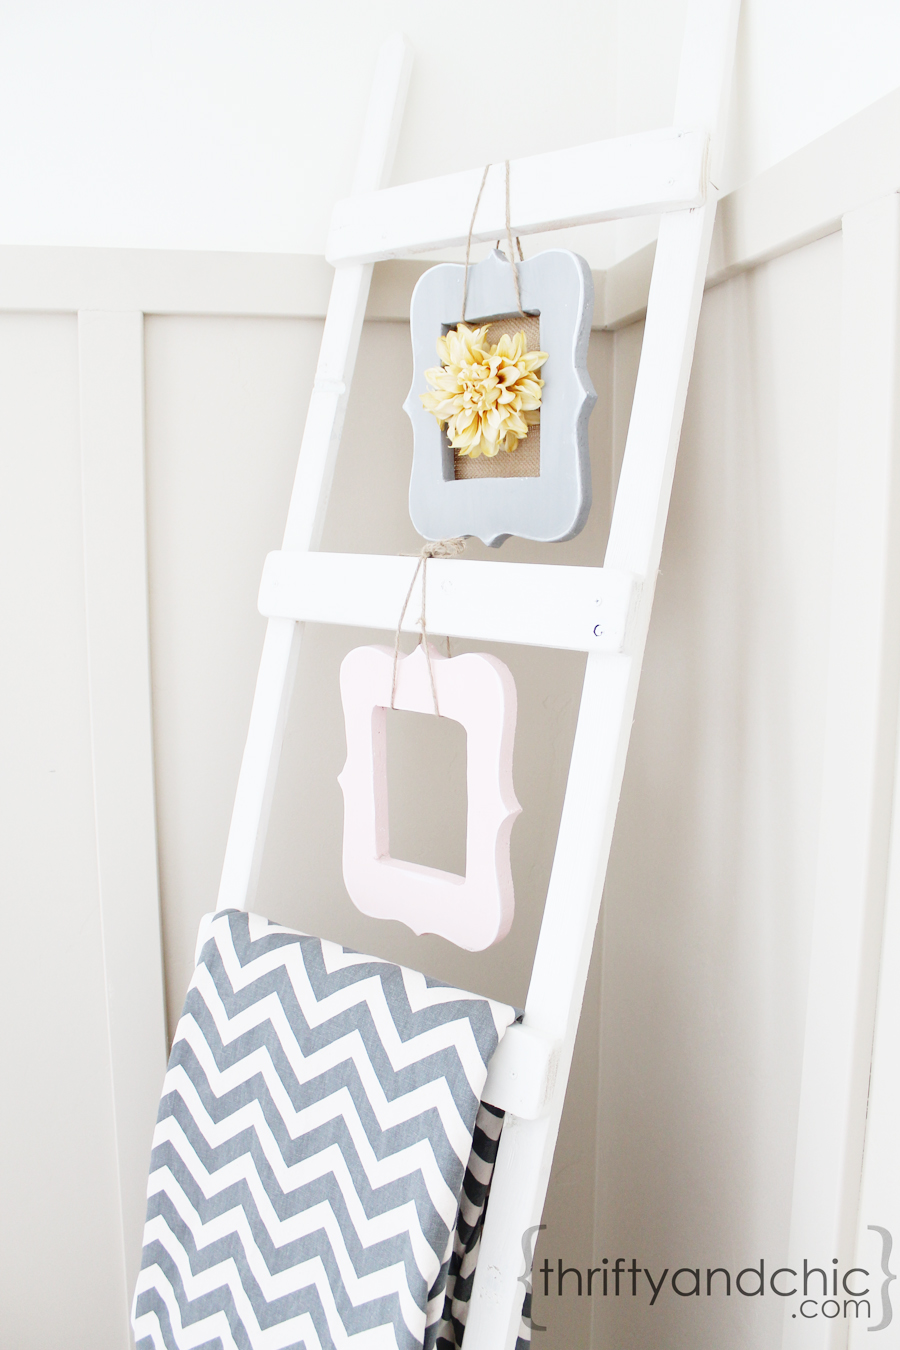 Thrifty and chic diy projects and home decor for Decor ladder house